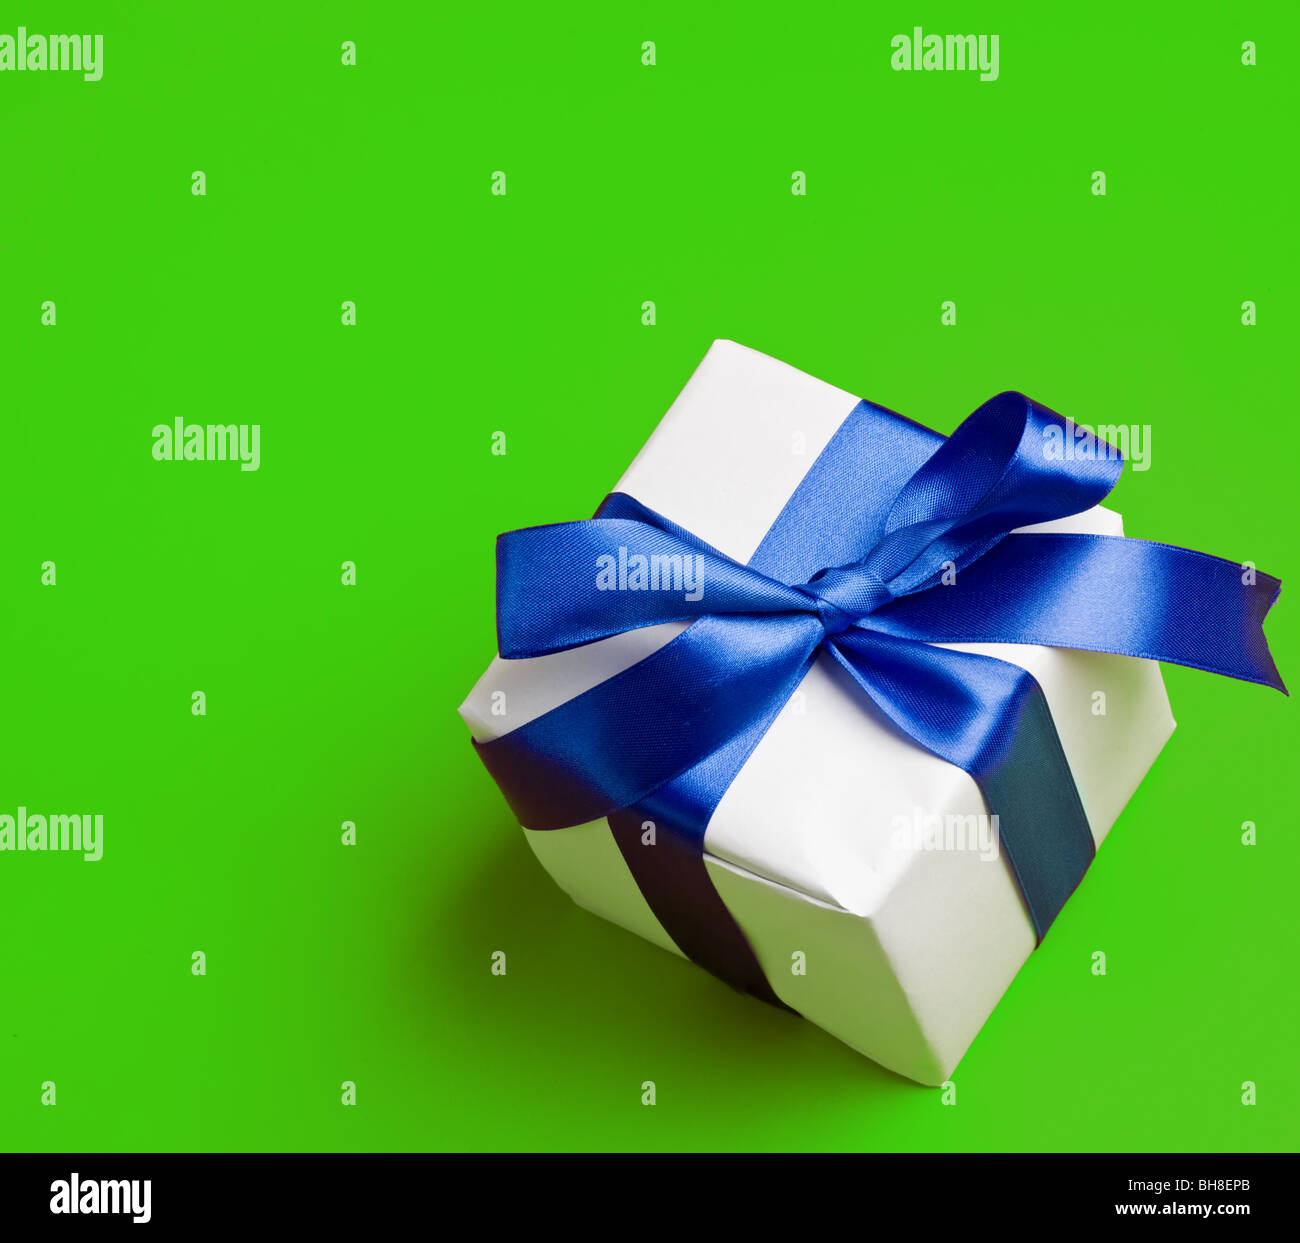 white gift in a blue ribbon on a green background - Stock Image